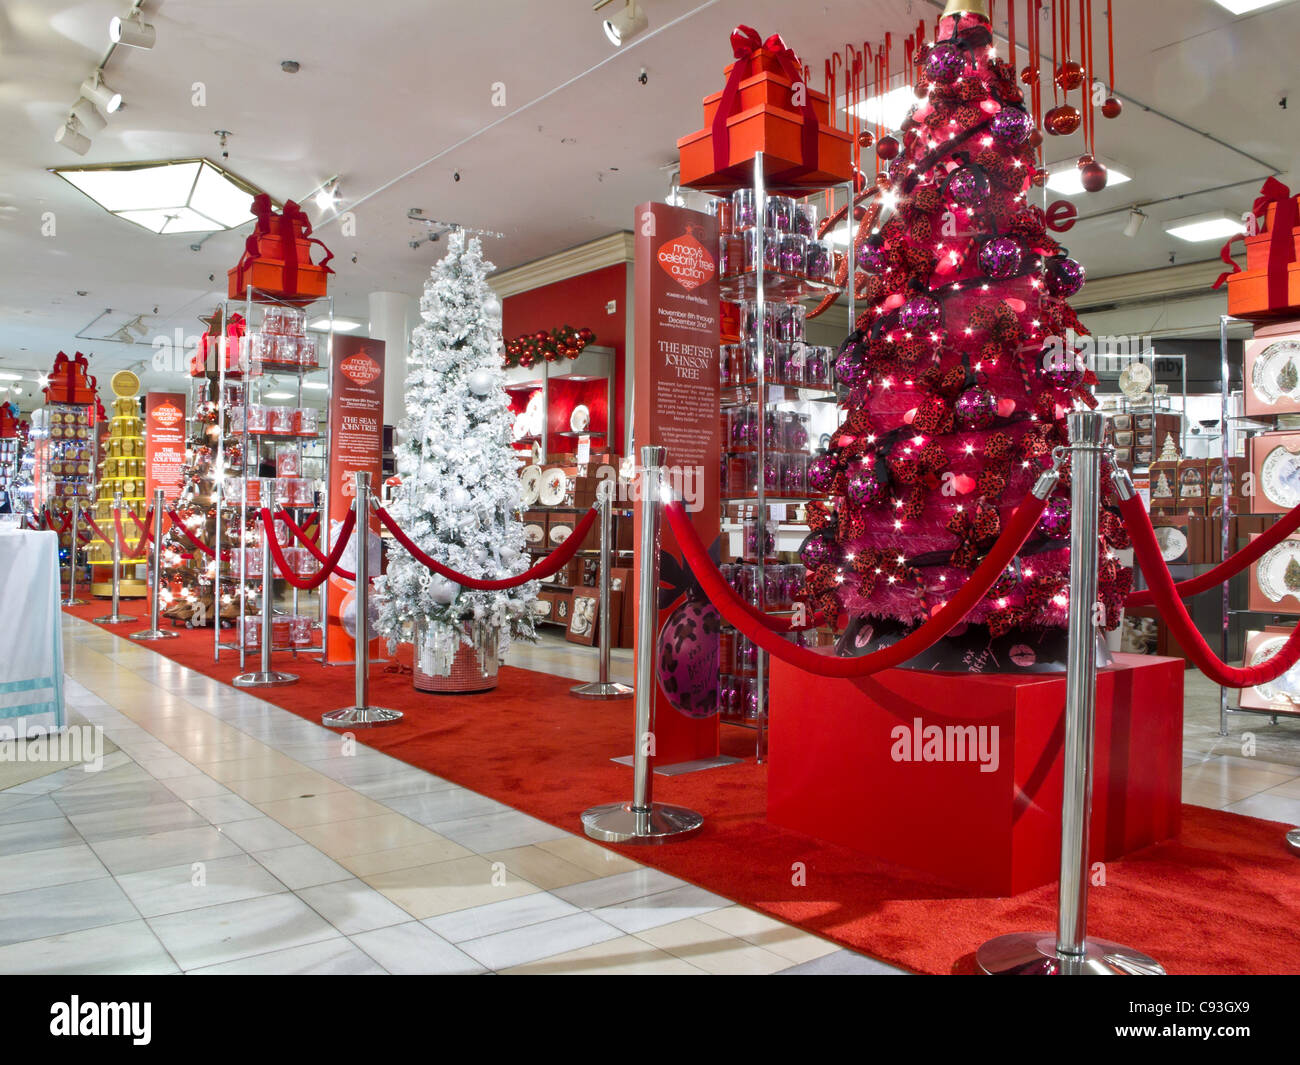 Macy's Department Store, Christmas Displays, NYC Stock Photo ...